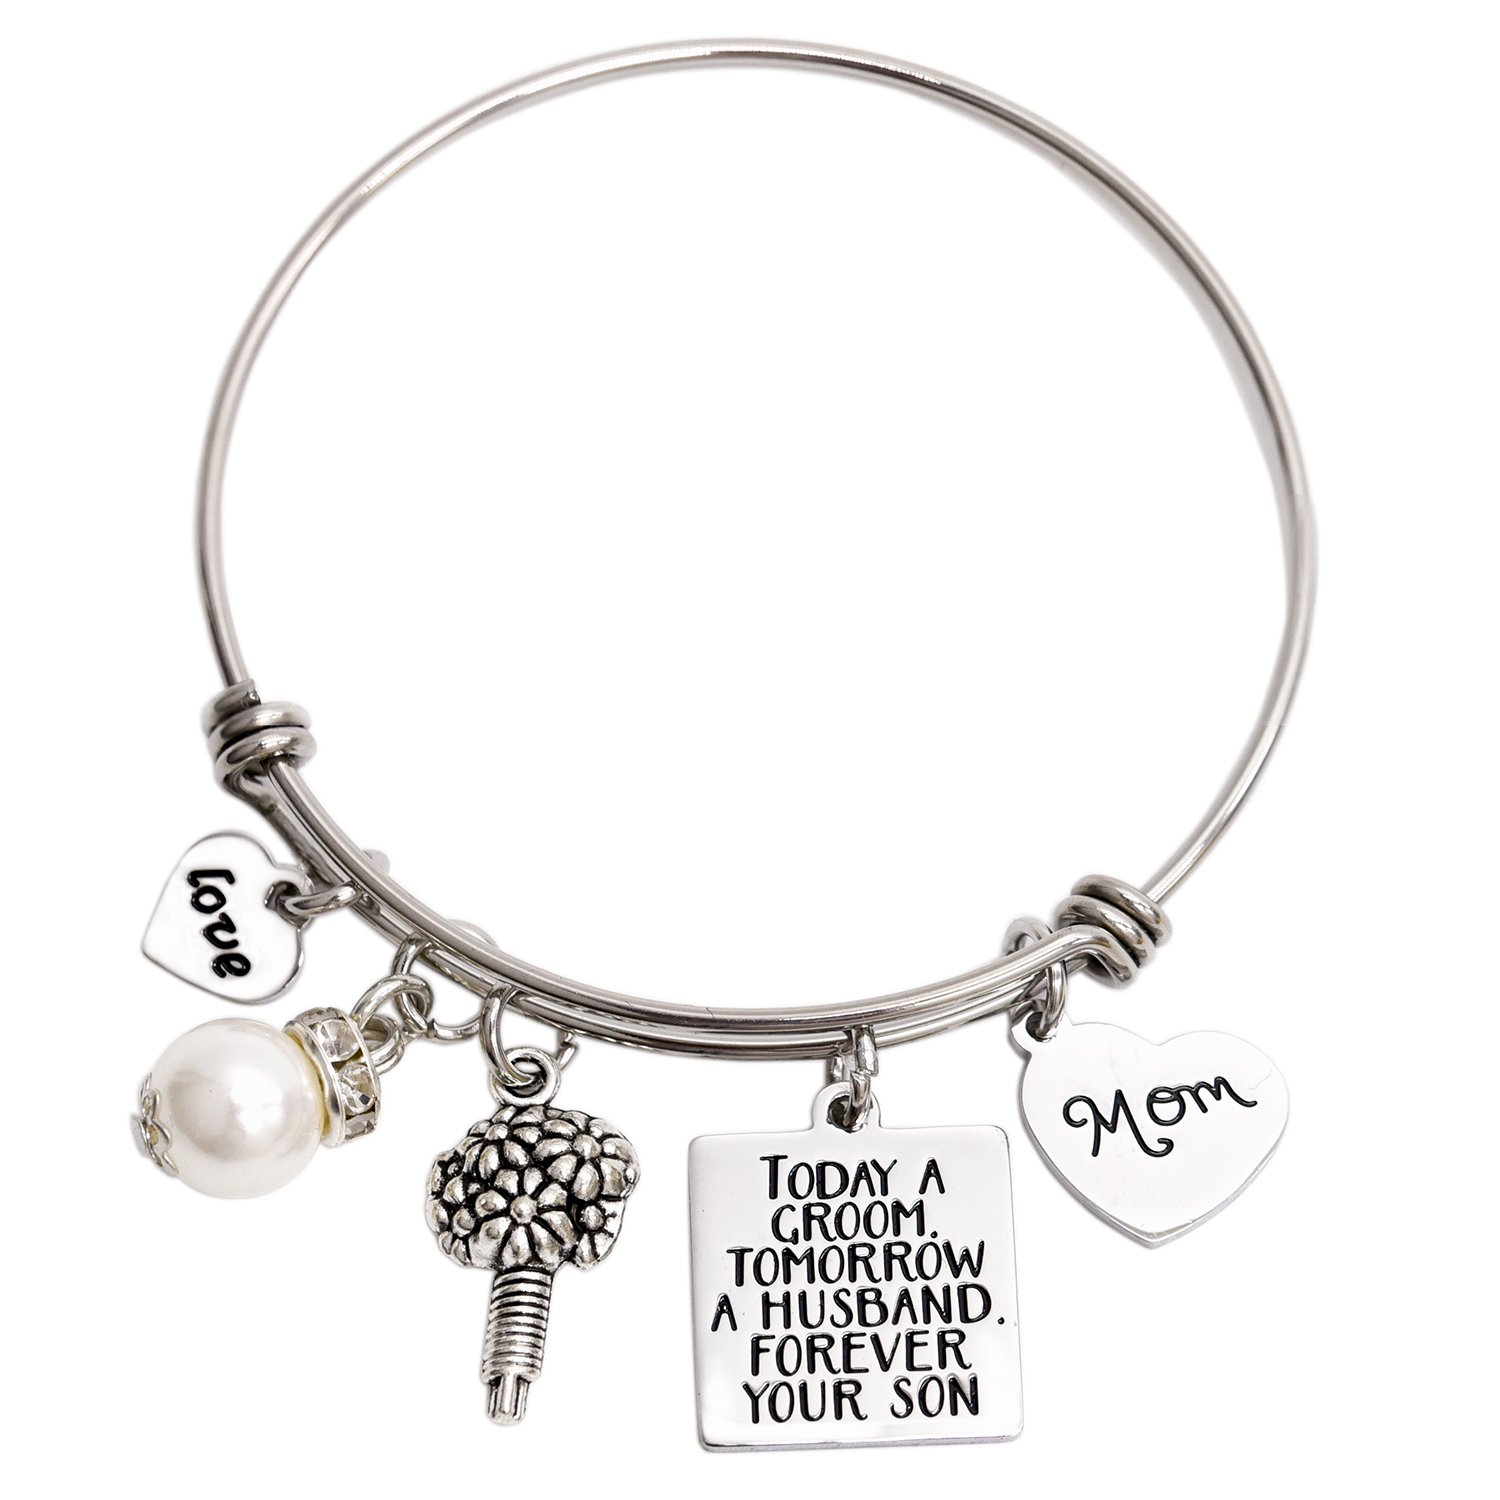 Mother of The Groom Gift Bracelet Today a Groom Tomorrow a Husband Forever Your Son Bangle Bracelets